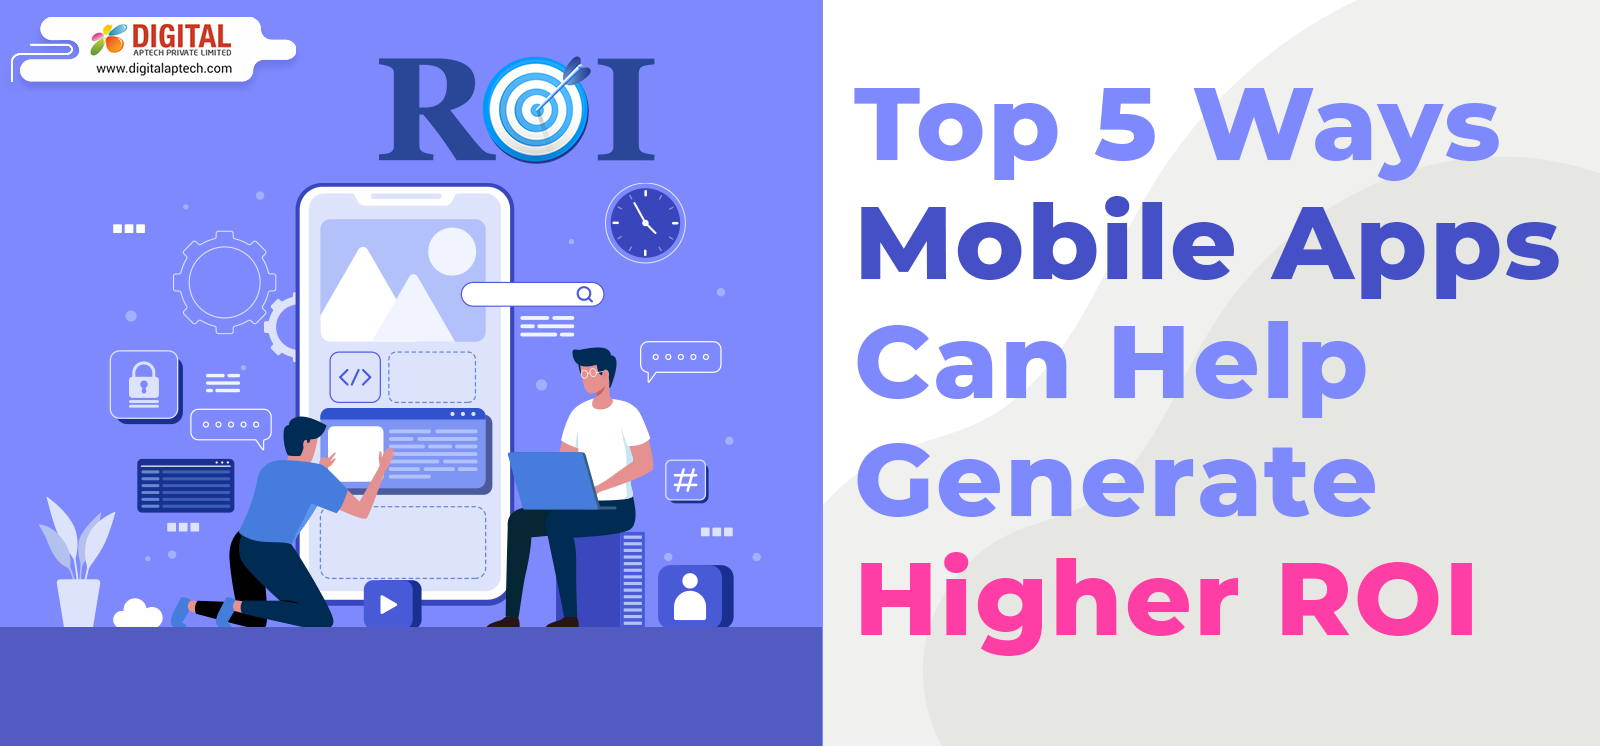 Top 5 Ways Mobile Apps Can Help Generate Higher ROI